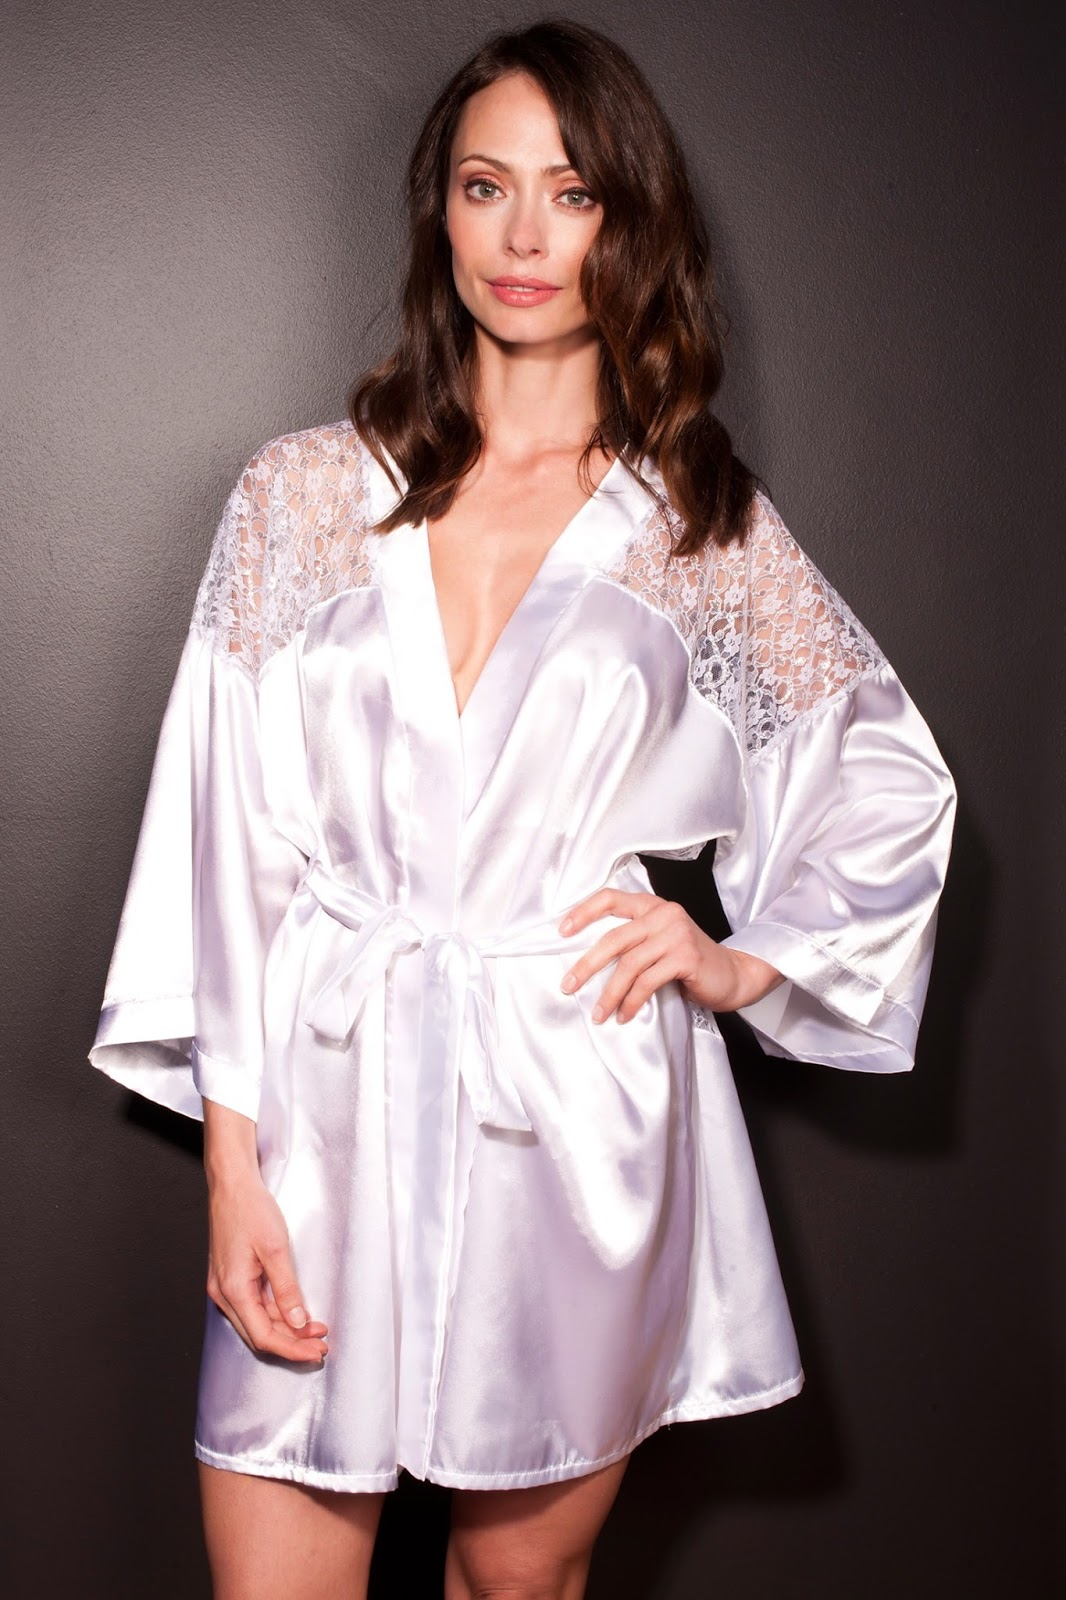 Silk Satin Dress Silk Satin Robe Blouse Dressing Gown-9564